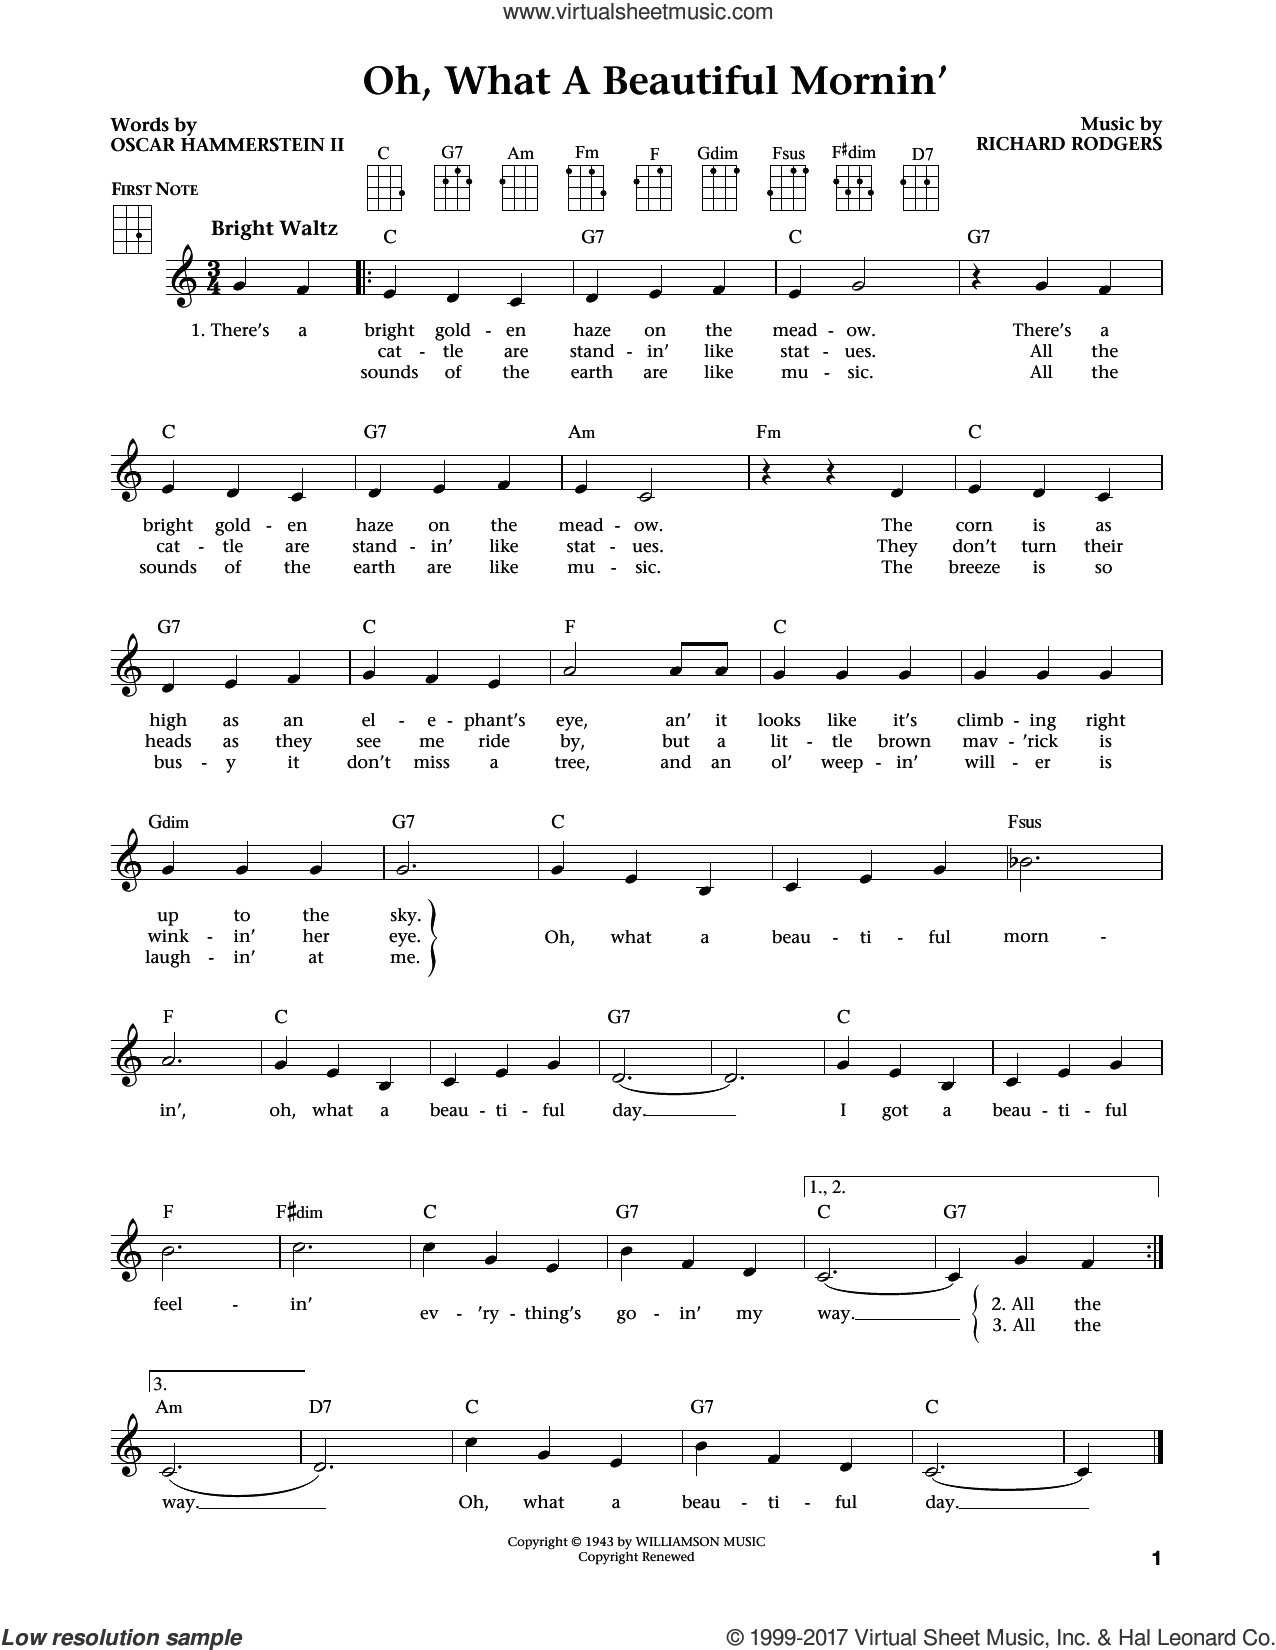 Oh, What A Beautiful Mornin' (from Oklahoma!) (arr. Liz and Jim Beloff) sheet music for ukulele by Rodgers & Hammerstein, Jim Beloff, Liz Beloff, Oscar II Hammerstein and Richard Rodgers, intermediate skill level